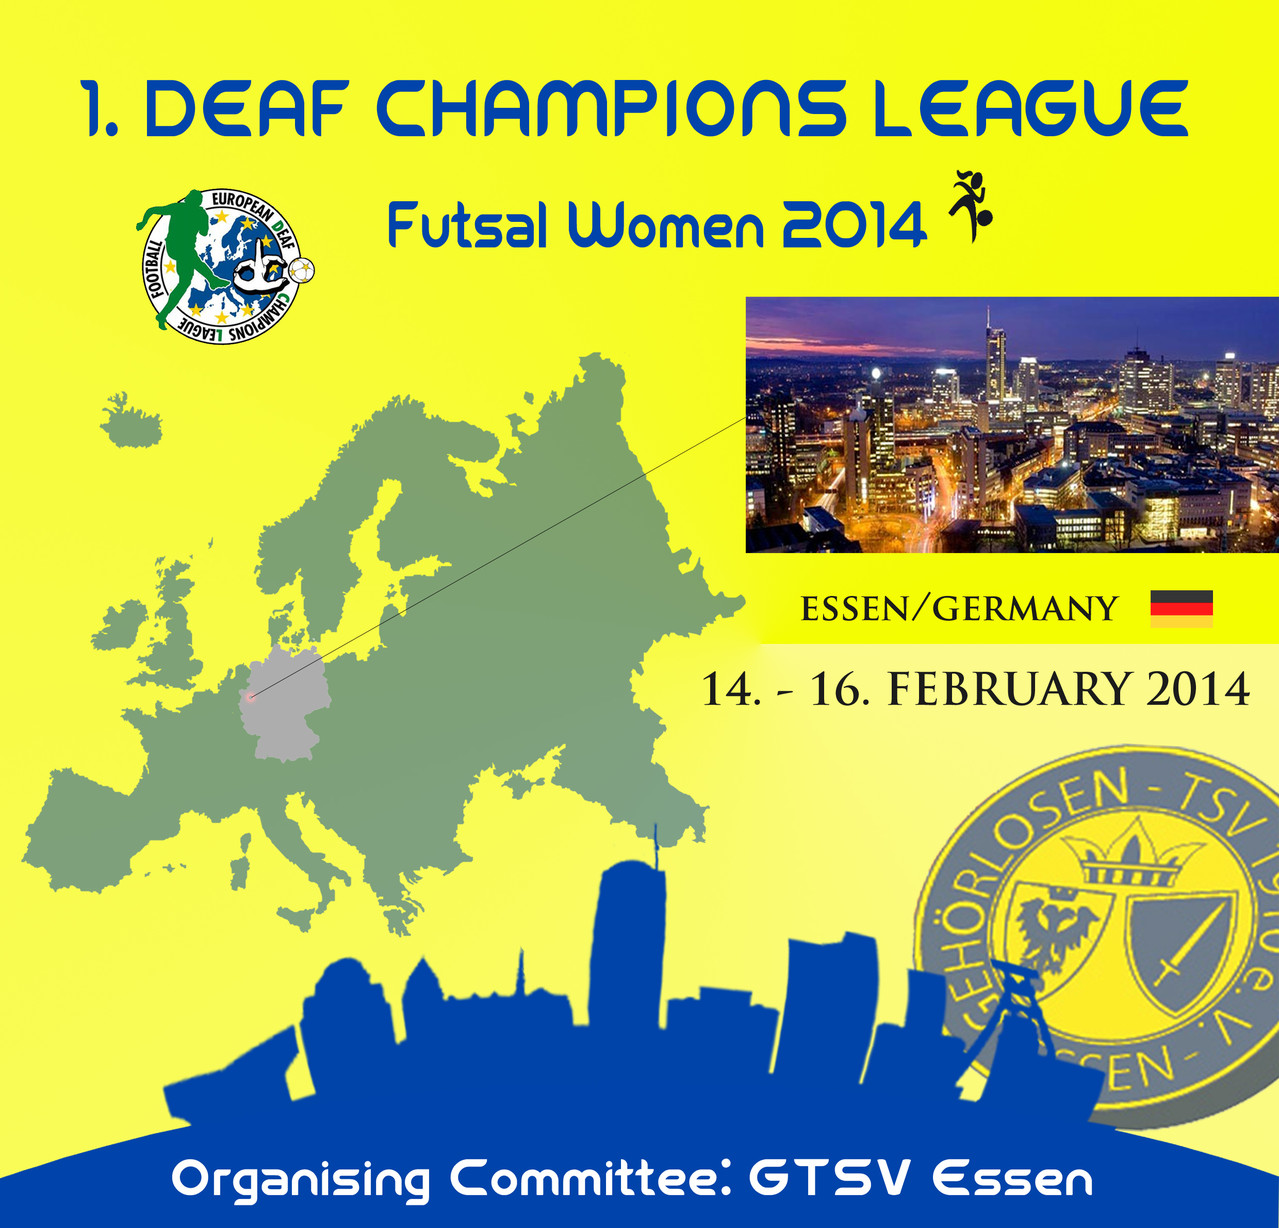 dd0cad29c8 Posters · Reports · Results. DCL IS SUPPORTED BY. Deaf Champions League